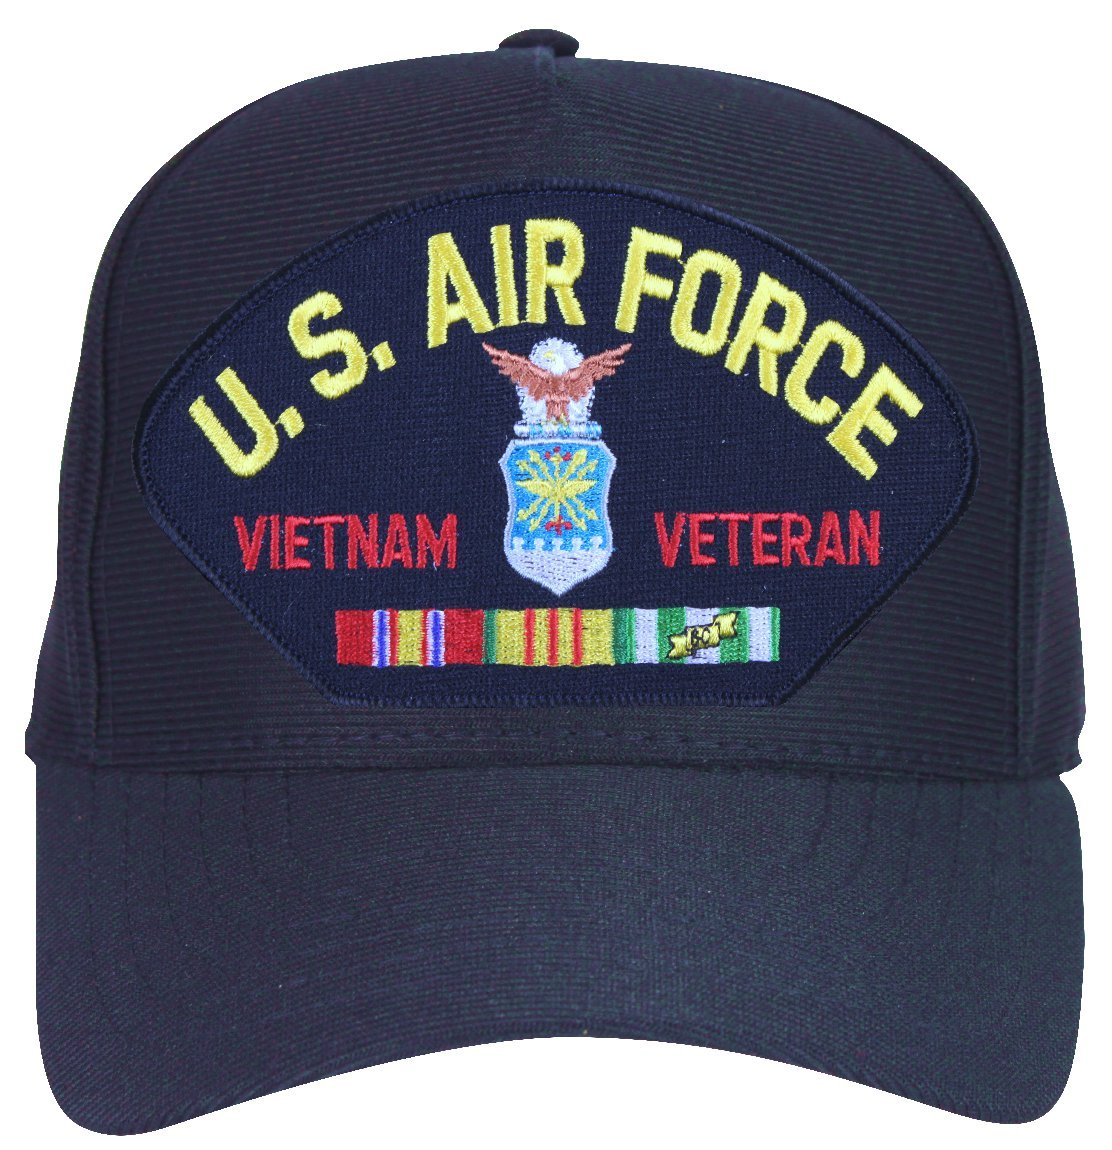 1fd89d0450856 Amazon.com  MilitaryBest Air Force Vietnam Veteran with Ribbons Ball Cap  with Custom Back Text  Sports   Outdoors